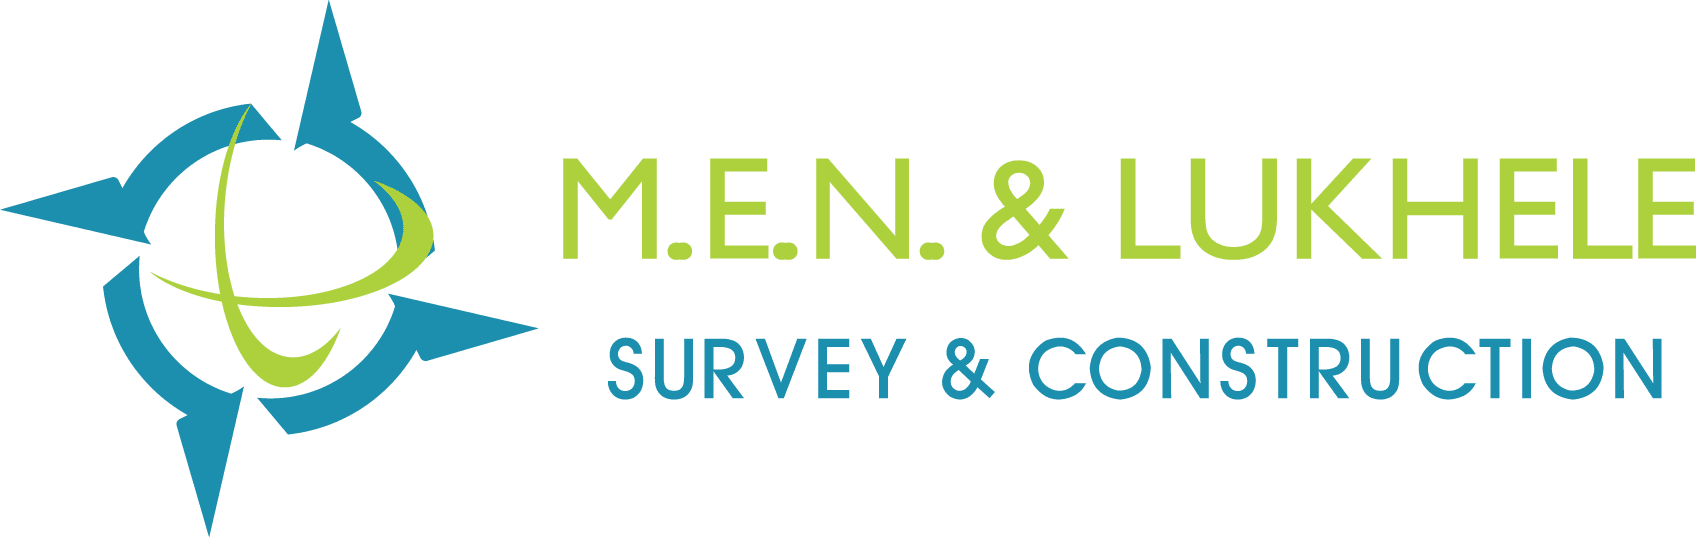 MEN & Lukhele Survey & Construction